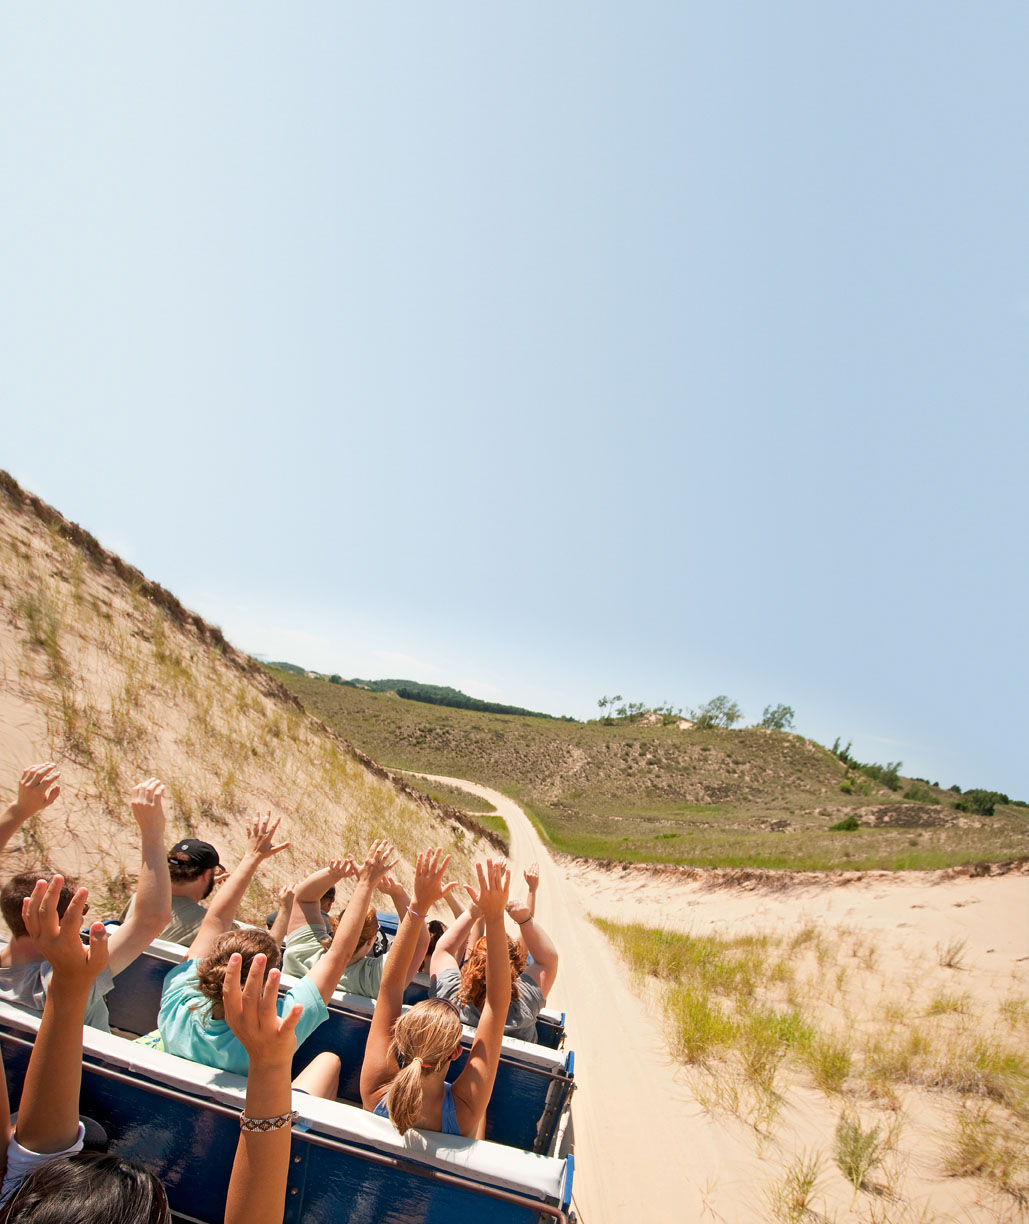 Thrills abound at Saugatuck Dune Rides.